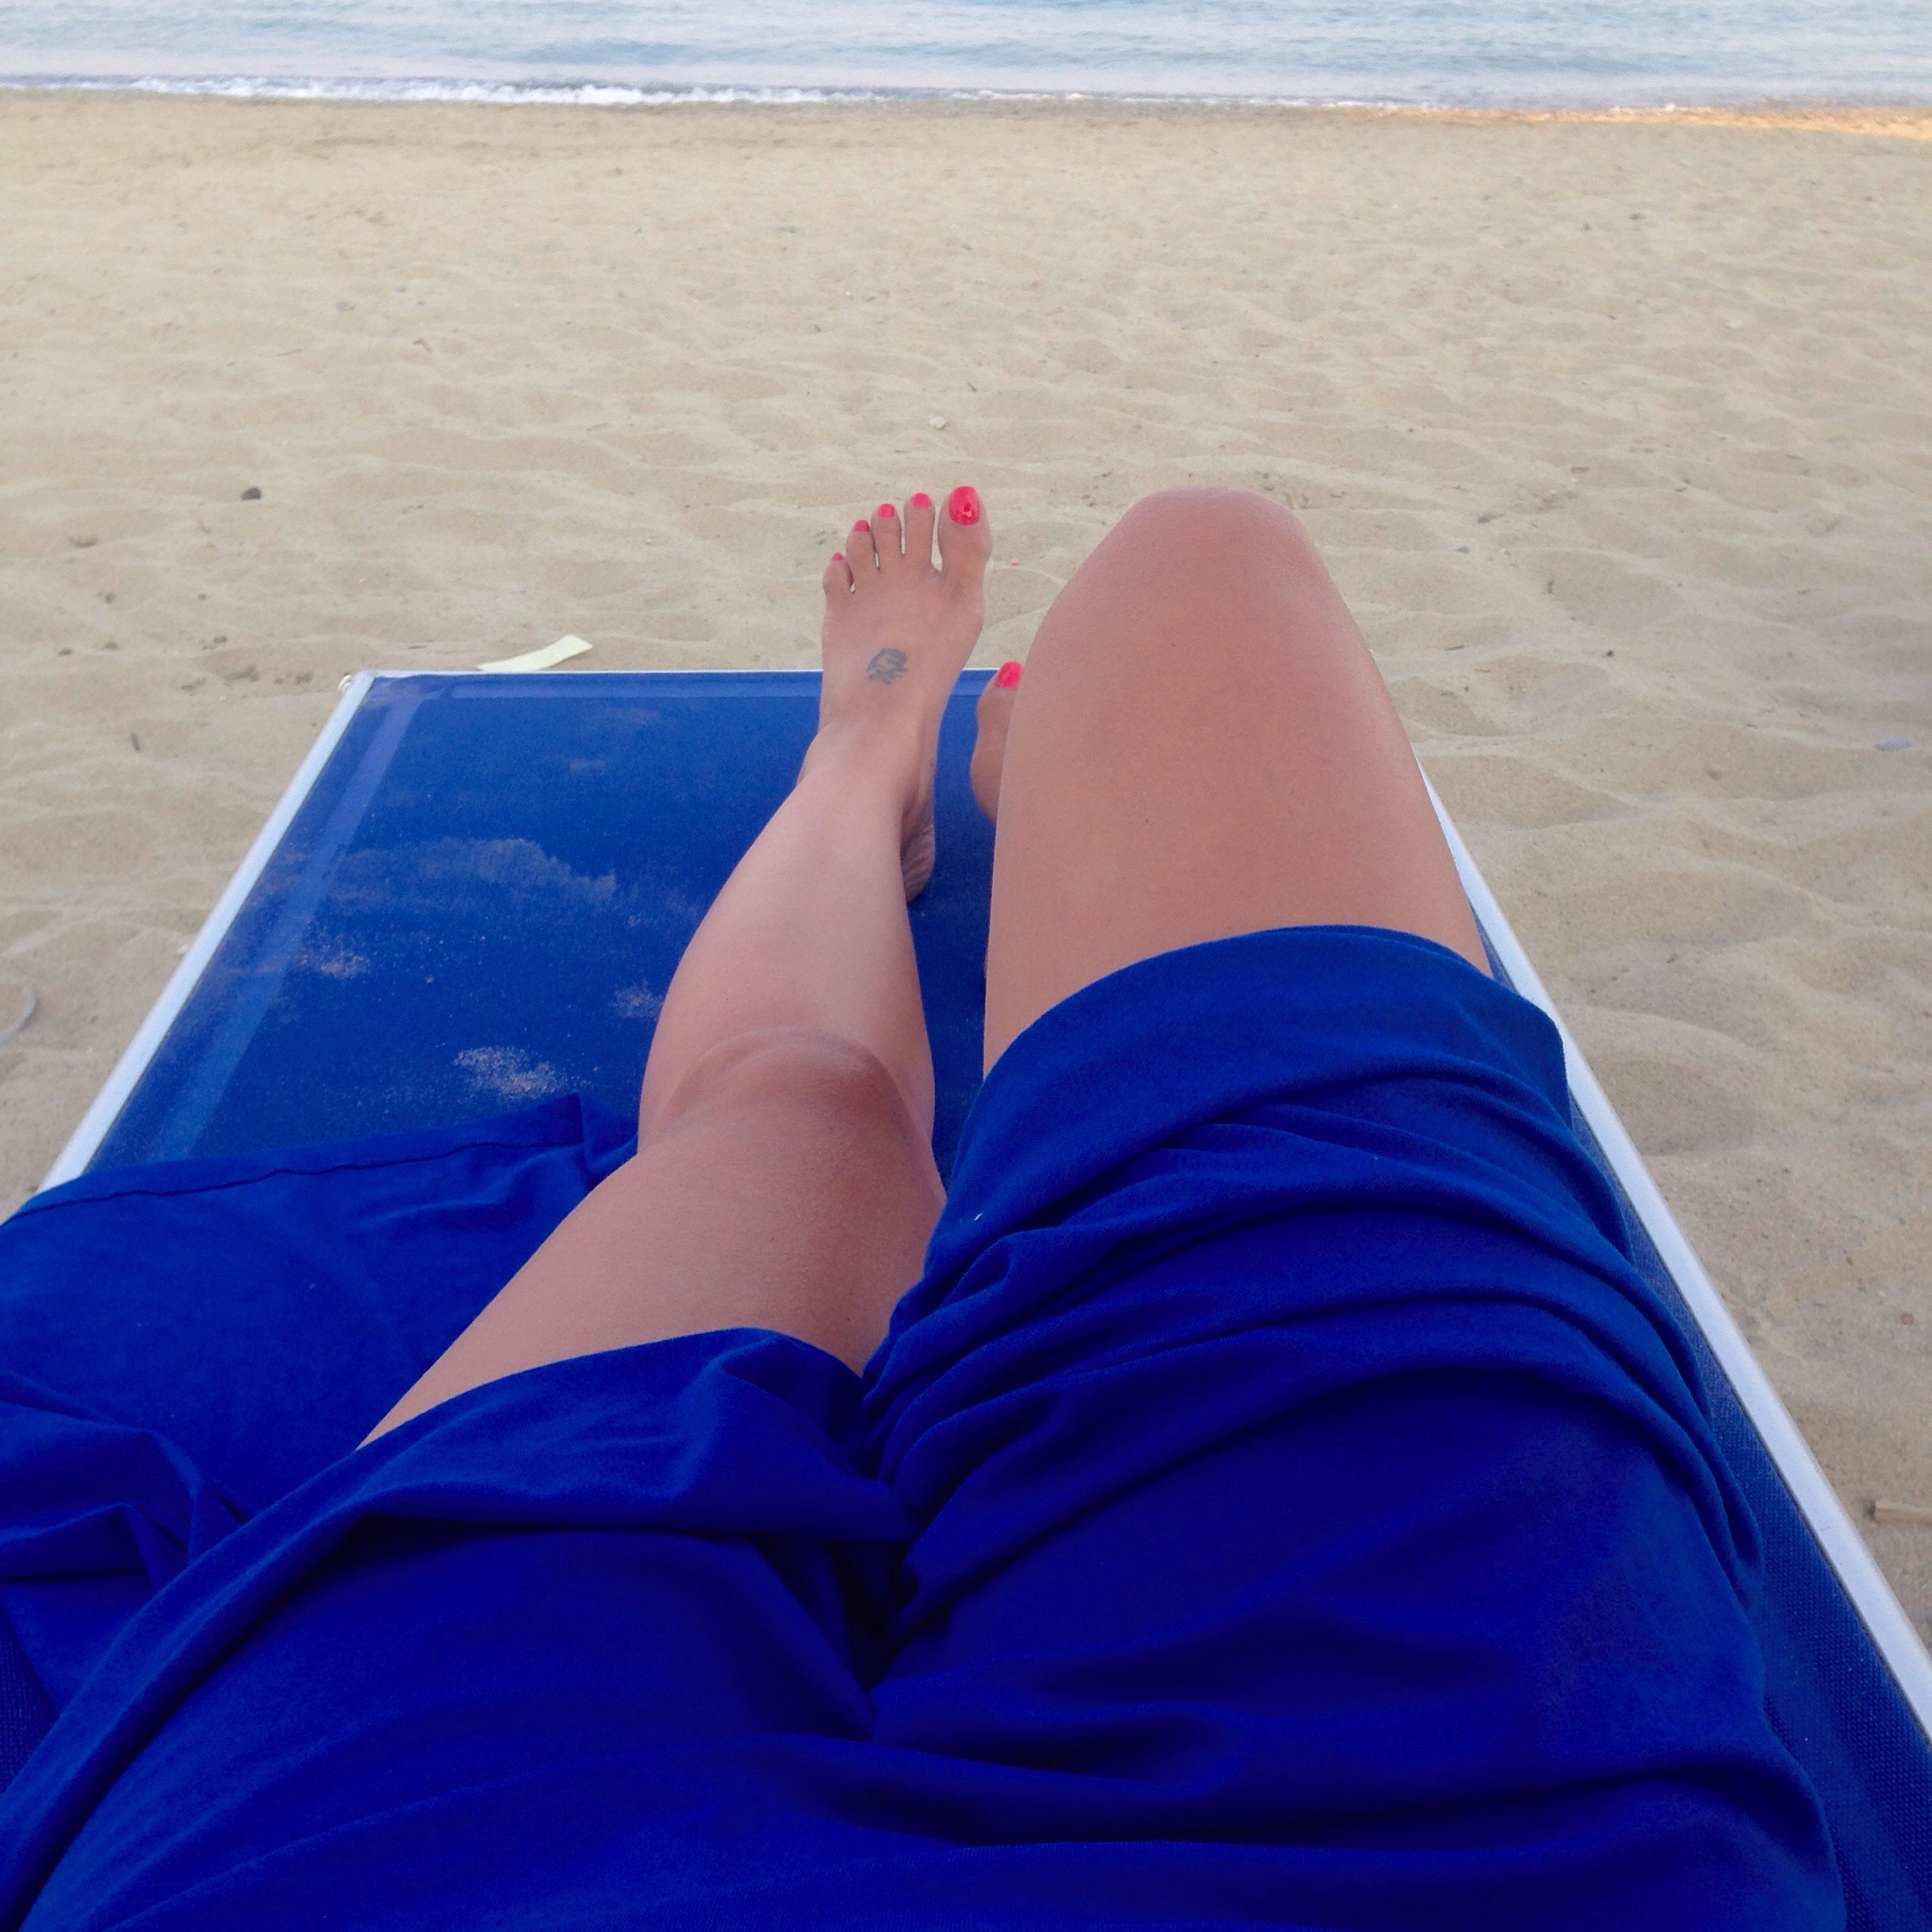 low section, person, personal perspective, relaxation, barefoot, lifestyles, human foot, leisure activity, sitting, blue, relaxing, legs crossed at ankle, resting, shoe, high angle view, sand